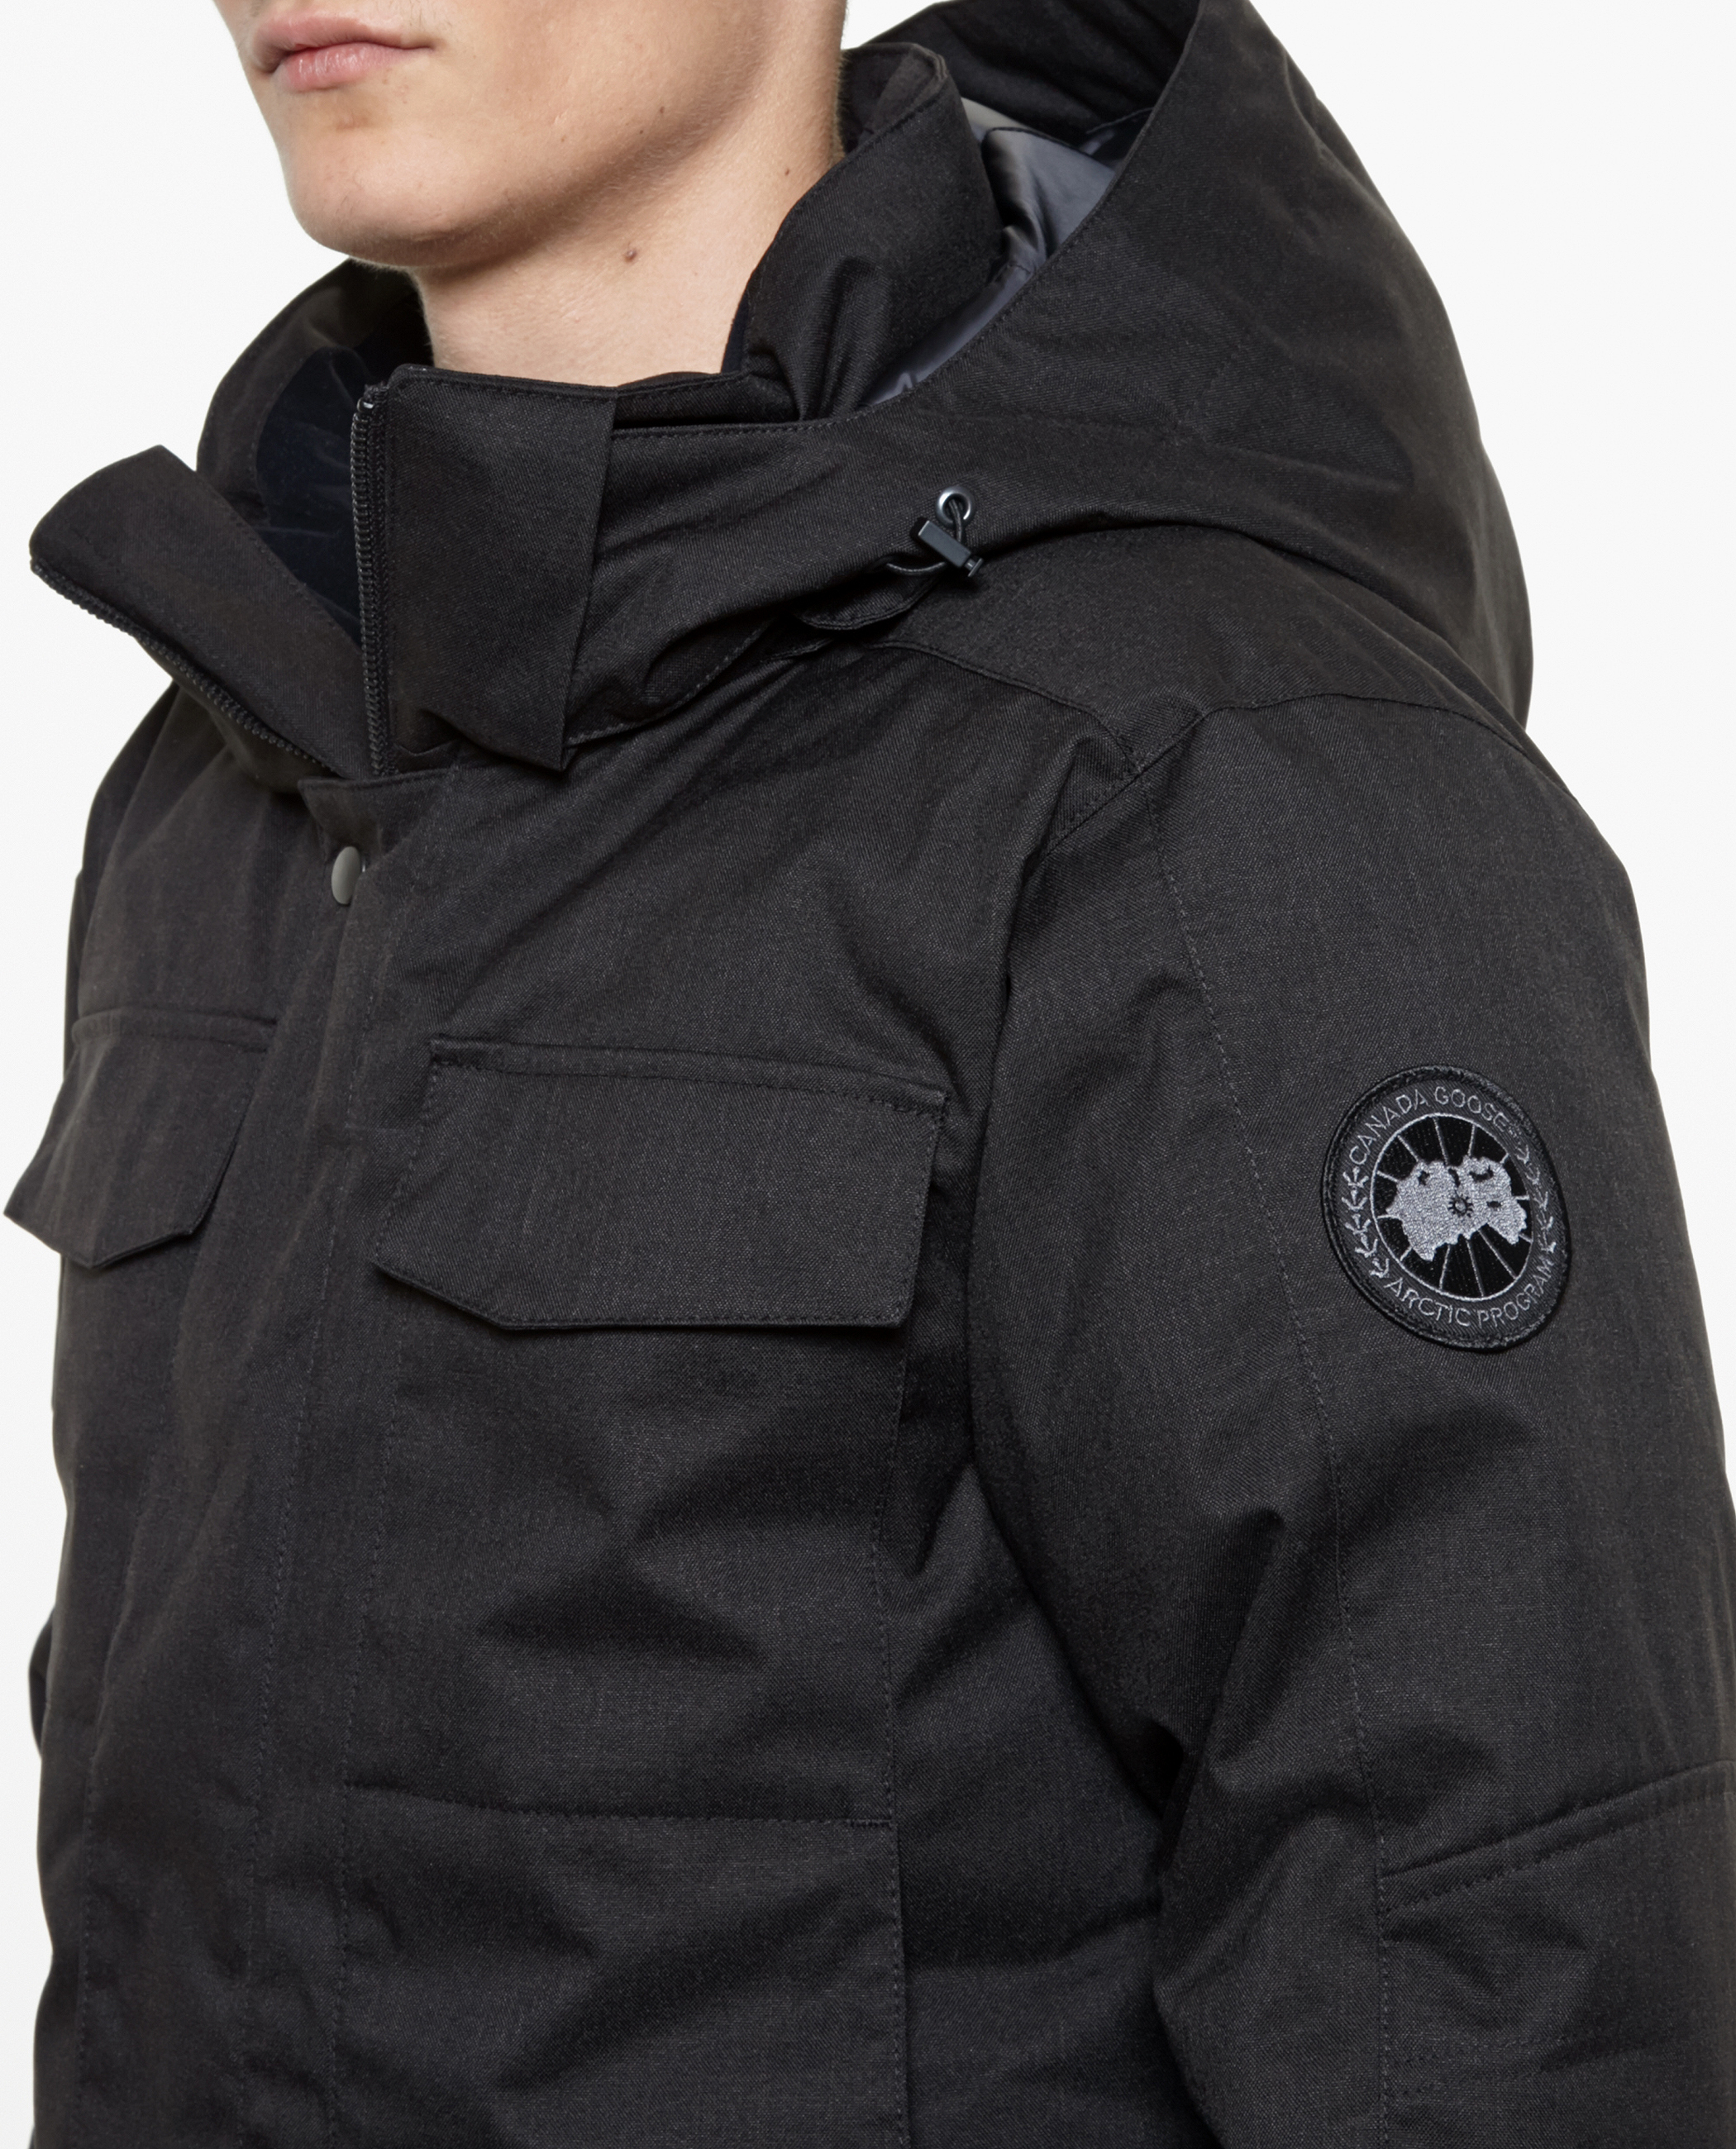 Canada Goose hats replica cheap - Canada goose Branta Windermere Coat in Black for Men | Lyst